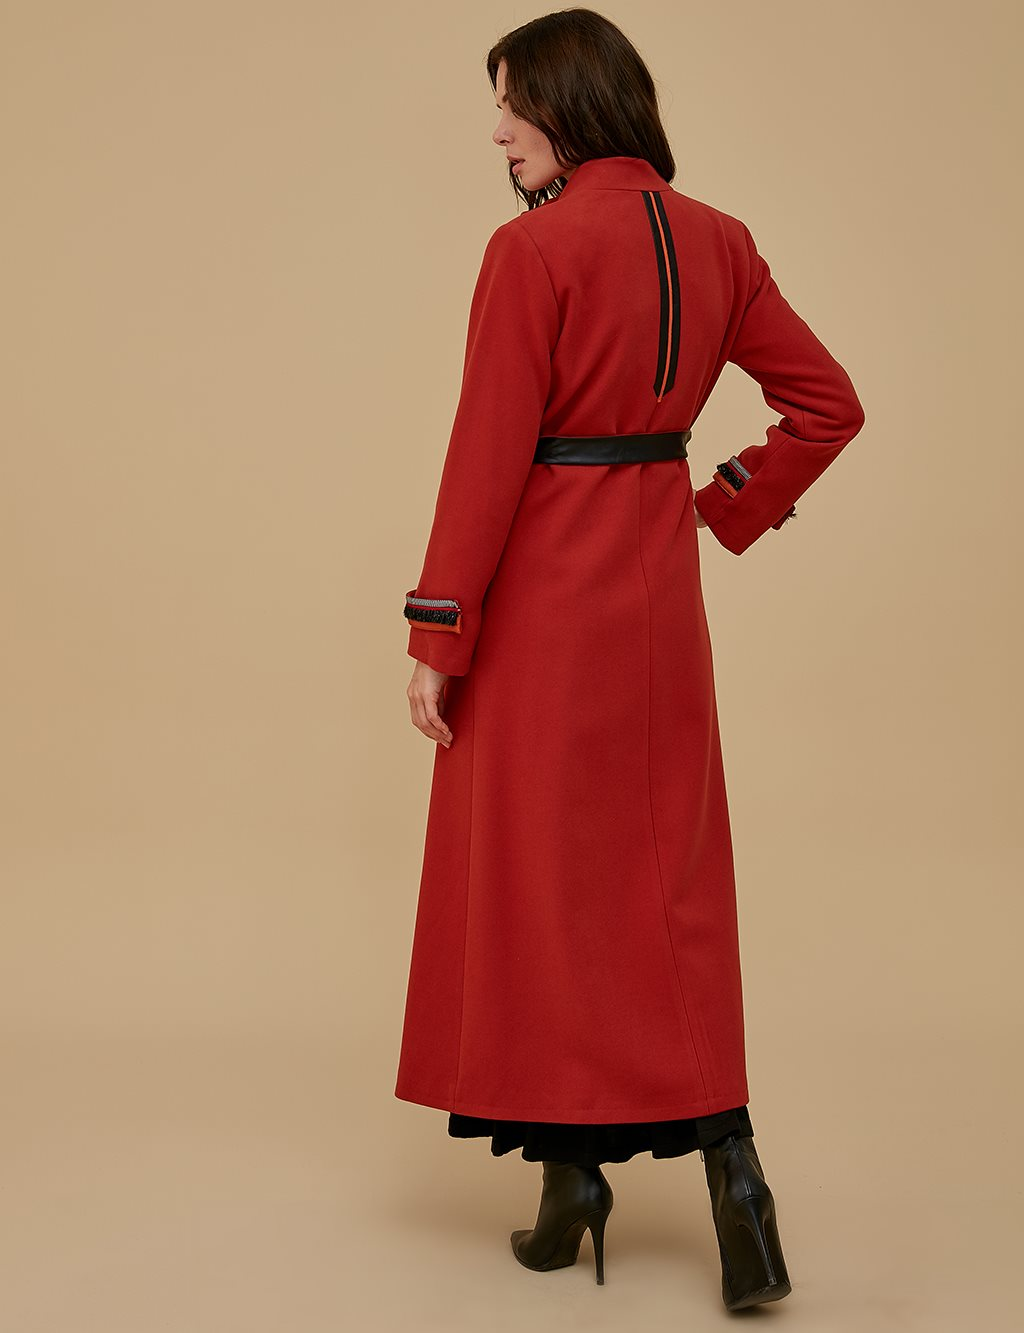 Coat With Leather Detailed Belt A9 18003 Tile